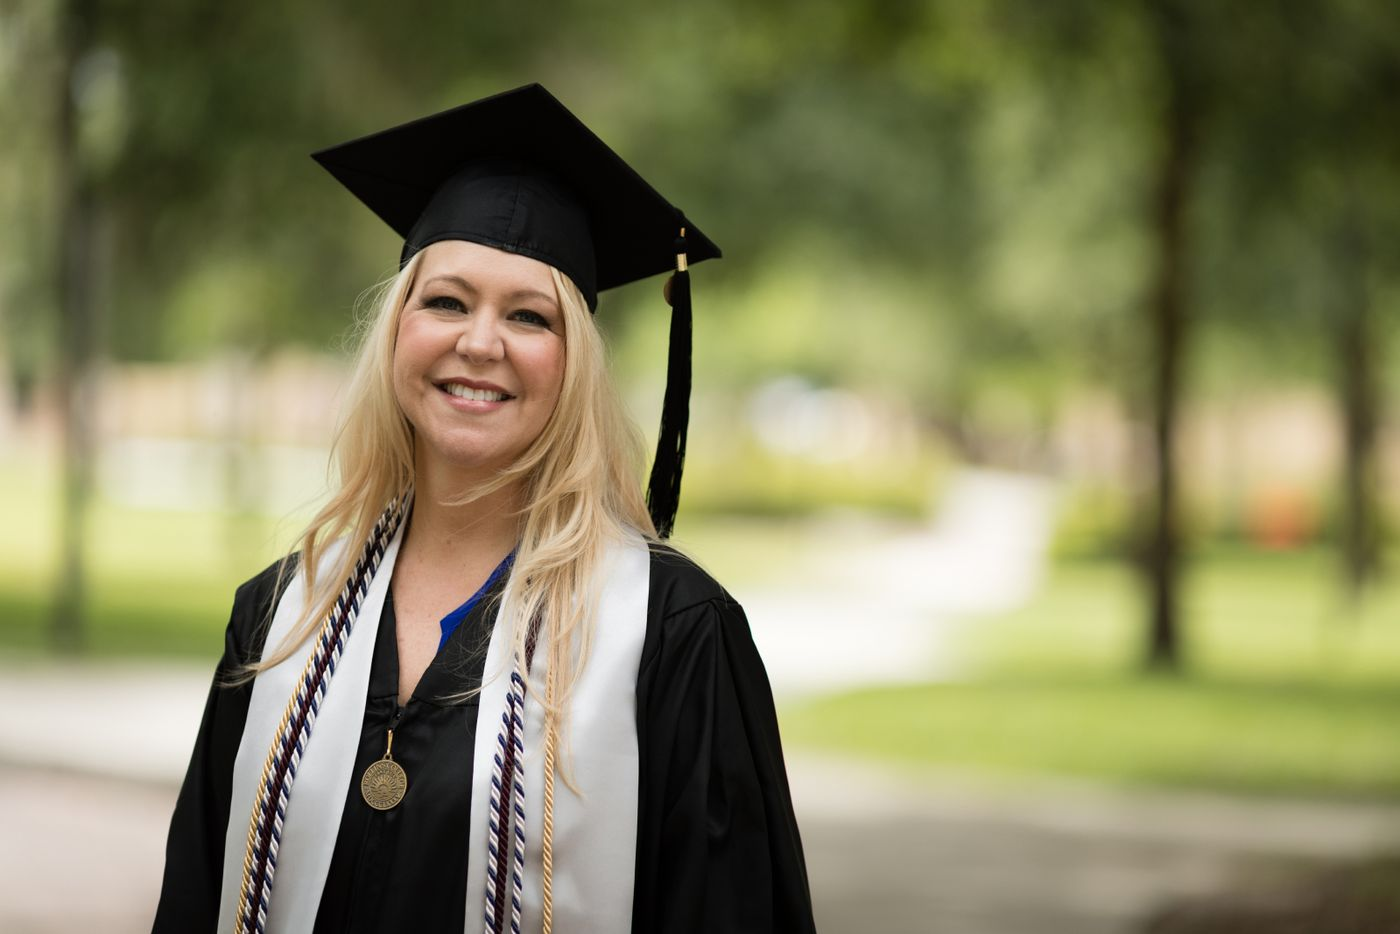 Shannon Burrows outside on campus wearing a cap and gown for commencement.